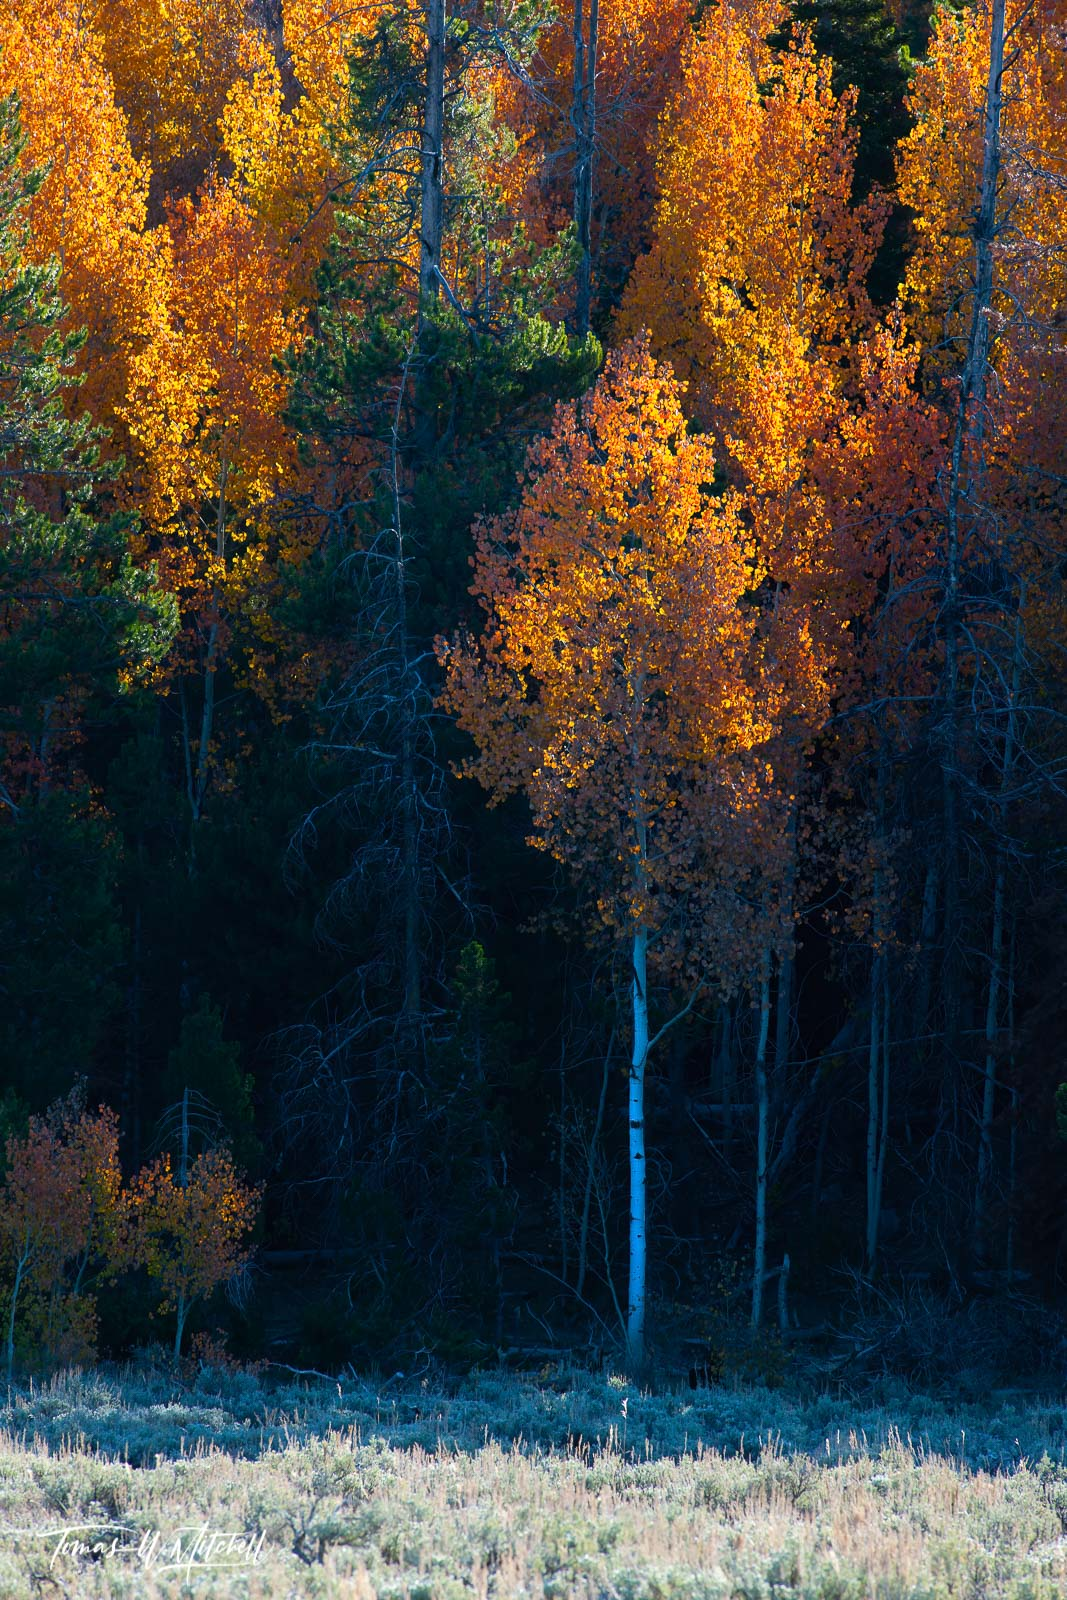 limited edition, museum grade, fine art, prints, aspen glow, utah, forest, light, branches, leaves, darkness, aspens, photograph, orange, red, fall, photo